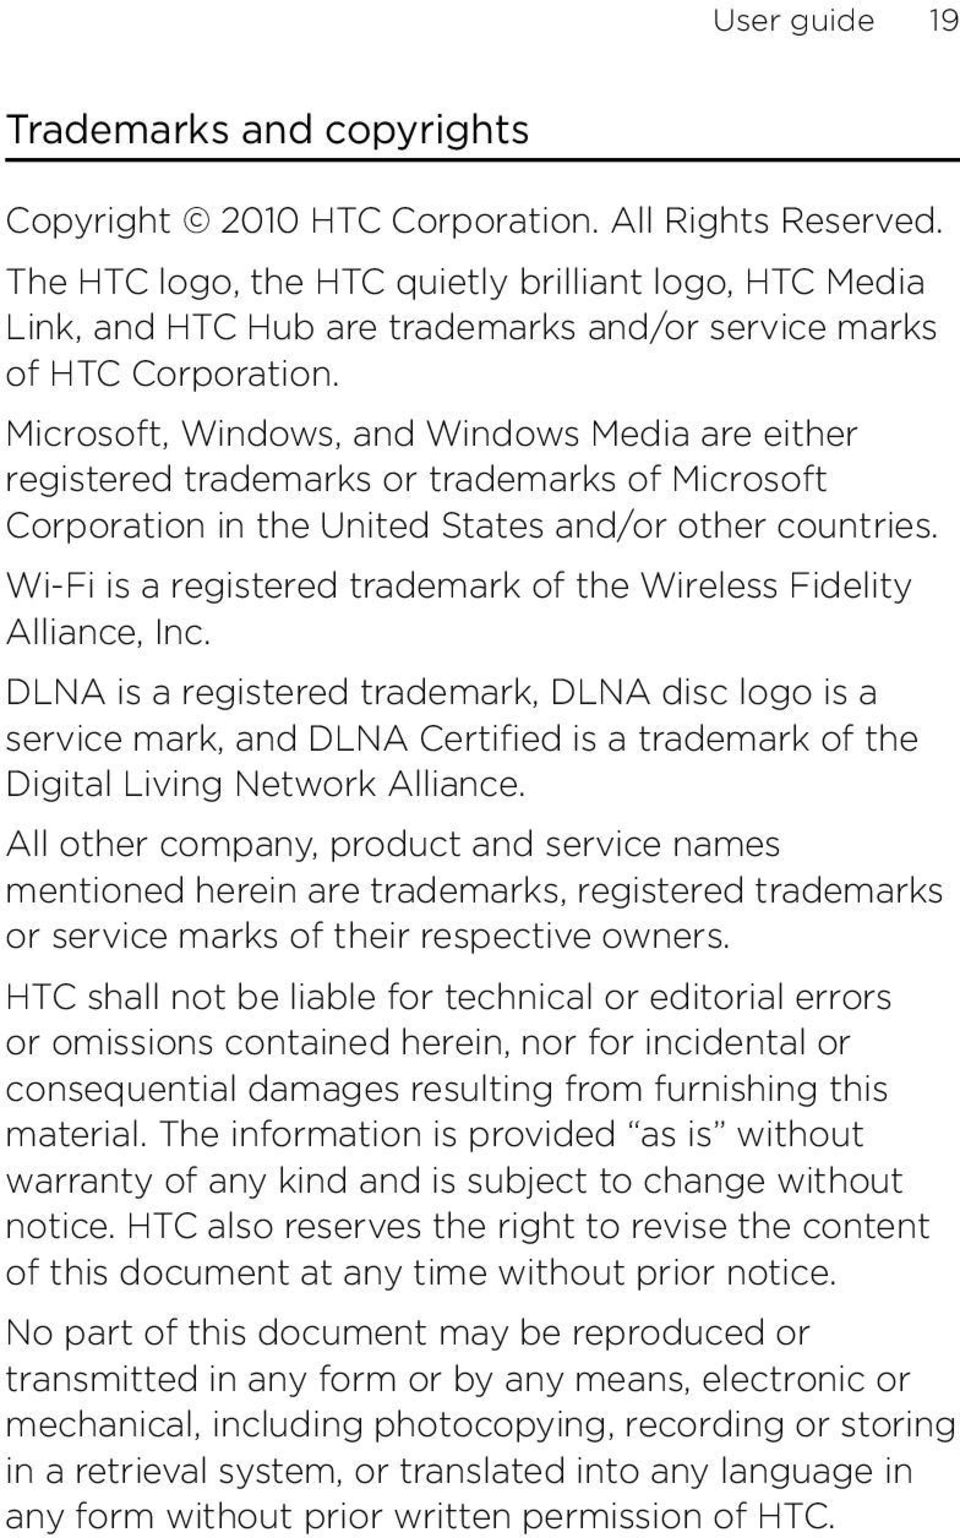 Microsoft, Windows, and Windows Media are either registered trademarks or trademarks of Microsoft Corporation in the United States and/or other countries.